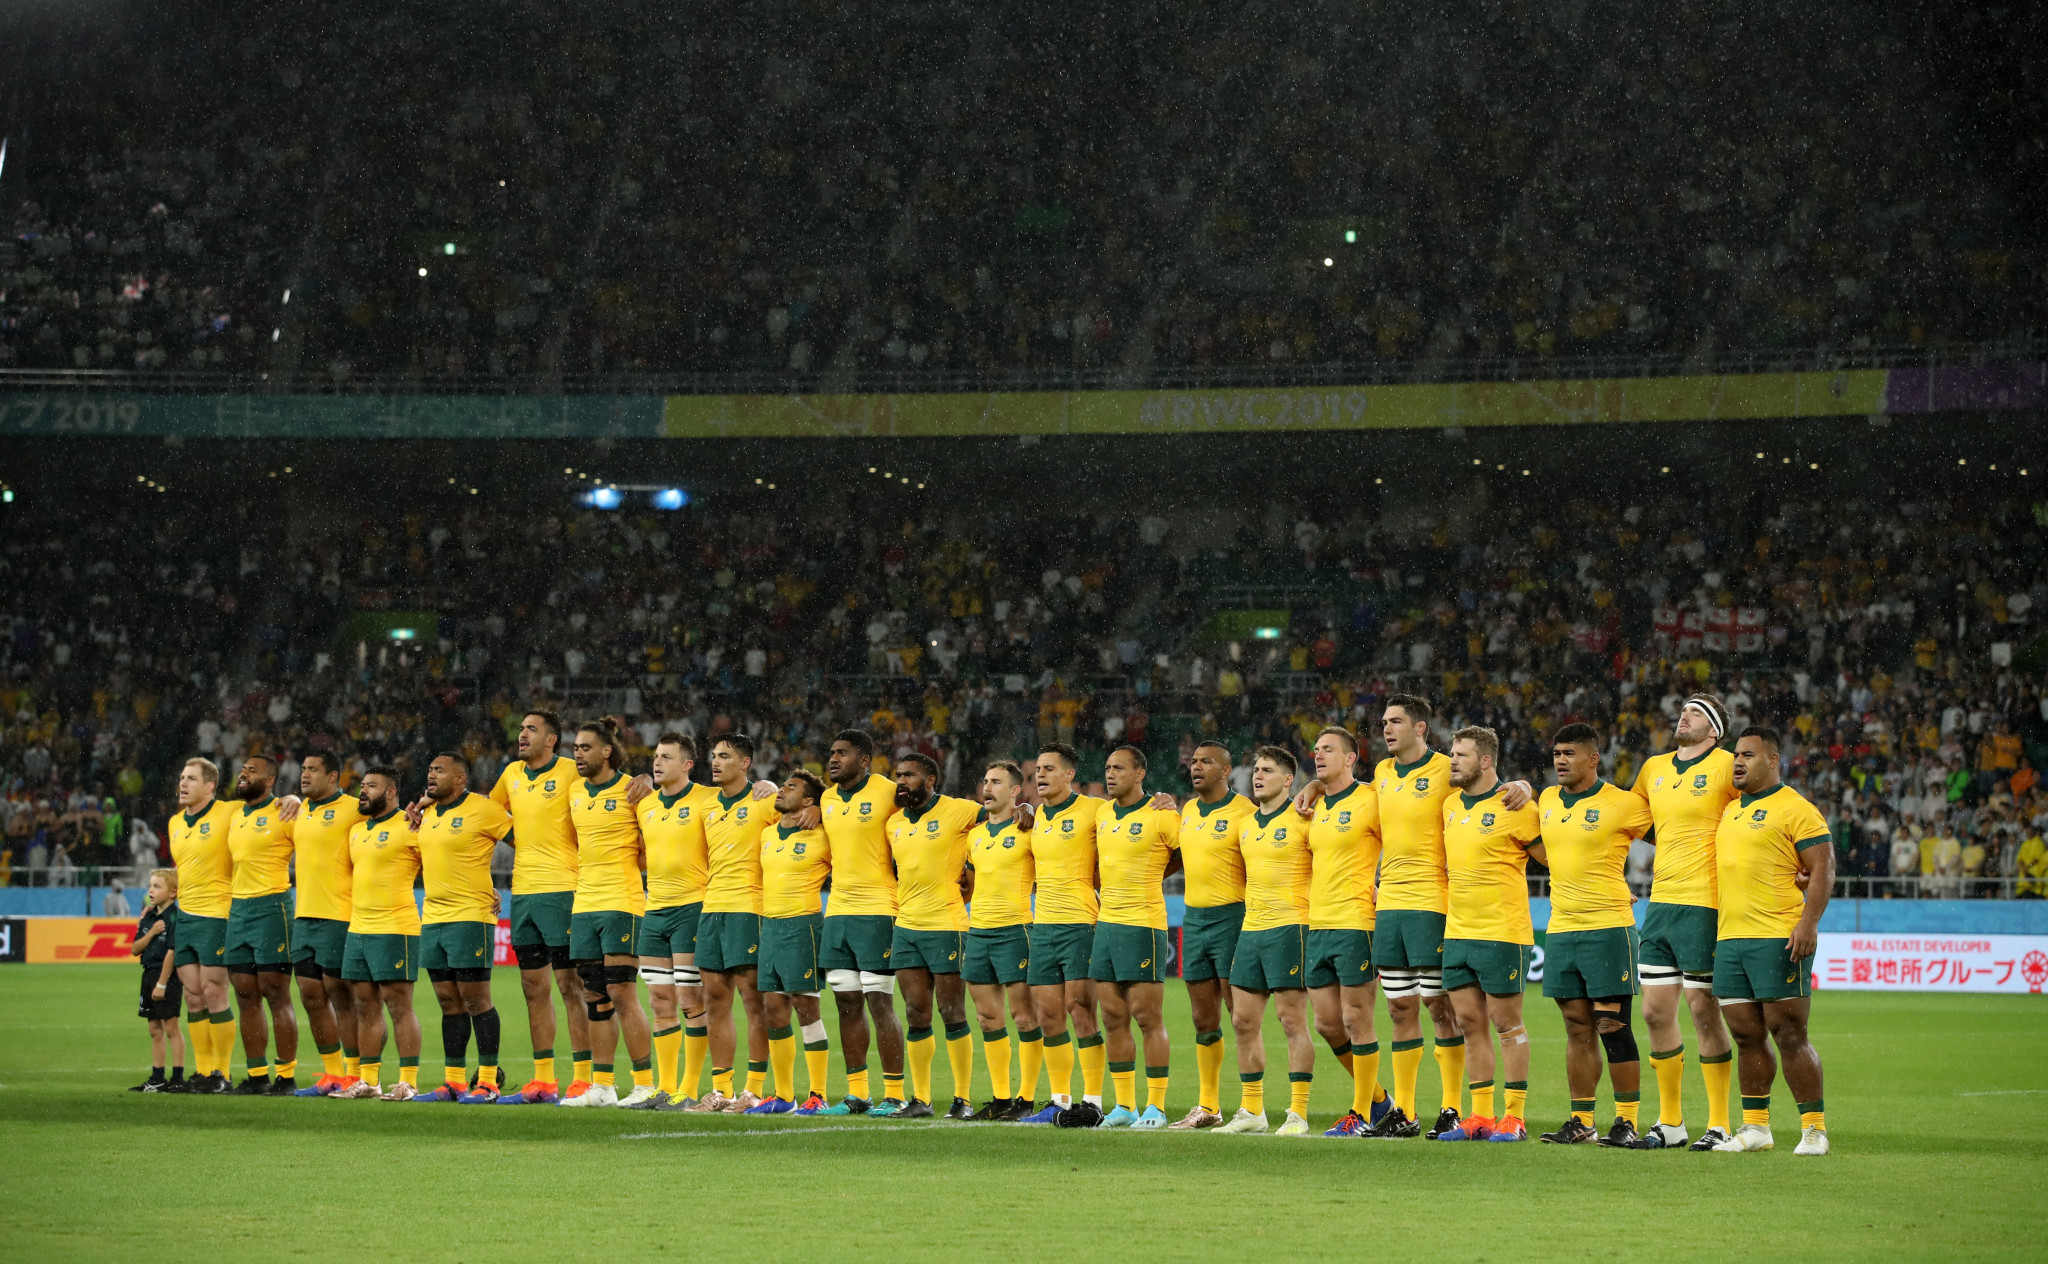 Rugby Australia receives emergency funding as McLennan appointed chairman